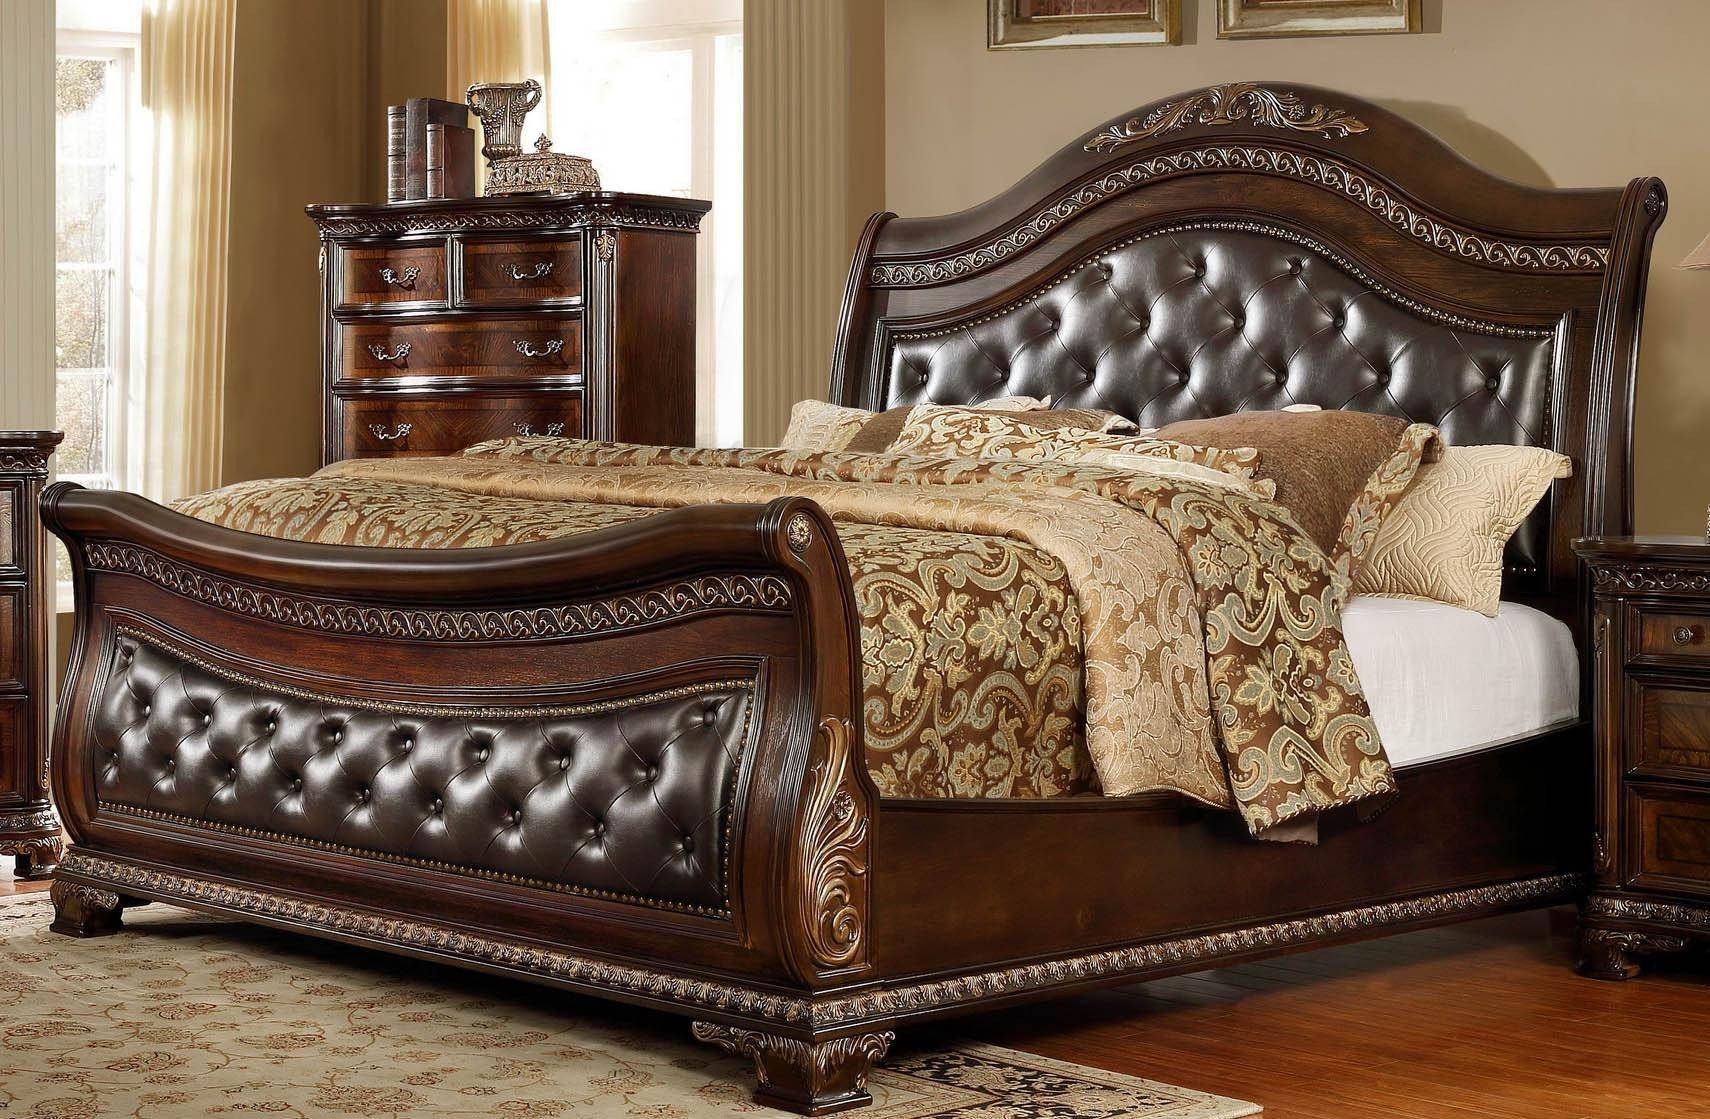 Full Size Bedroom Furniture Set Awesome Mcferran B9588 King Sleigh Bed In Oak Veneers Dark Cherry Finish Leather